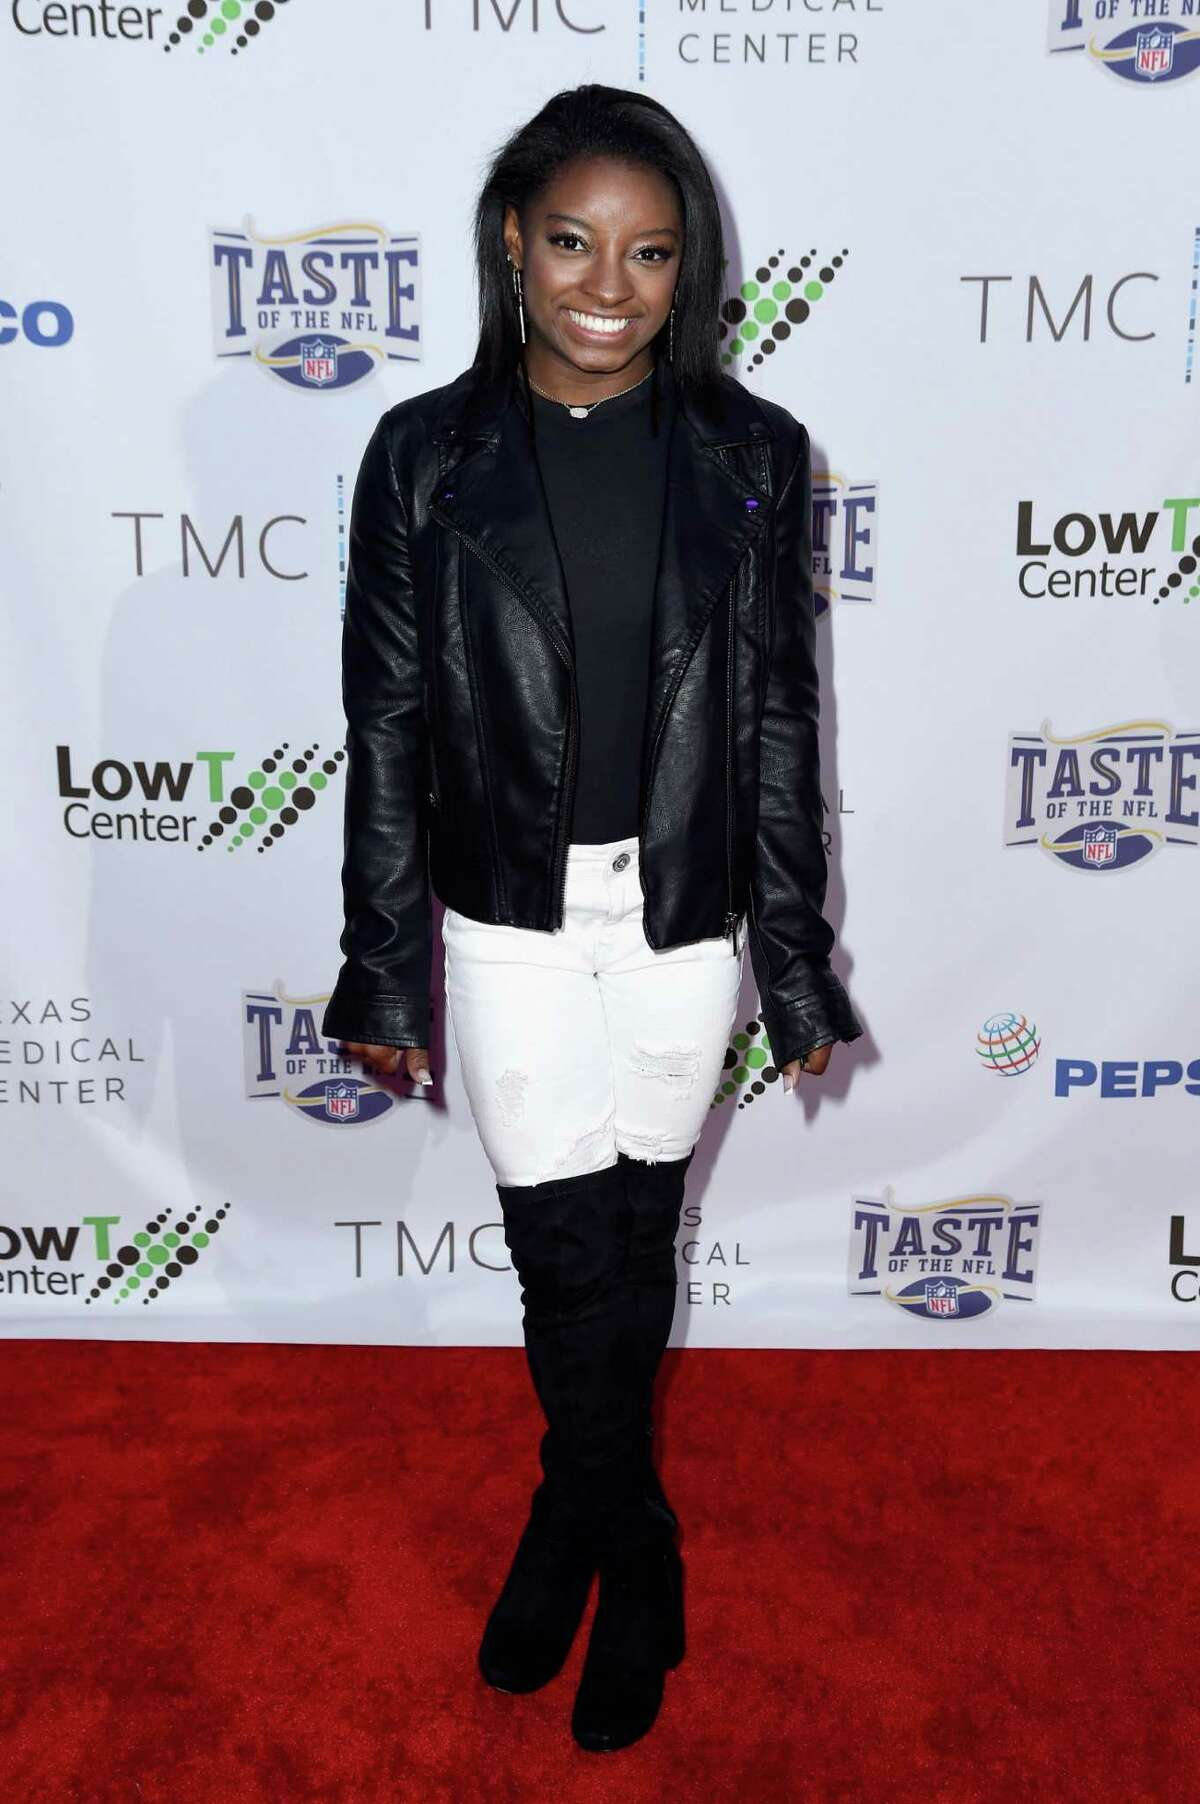 HOUSTON, TX - FEBRUARY 04: Olympic gymnast Simone Biles attends the Taste Of The NFL 'Party With A Purpose' at Houston University on February 4, 2017 in Houston. at University of Houston on February 4, 2017 in Houston, Texas.